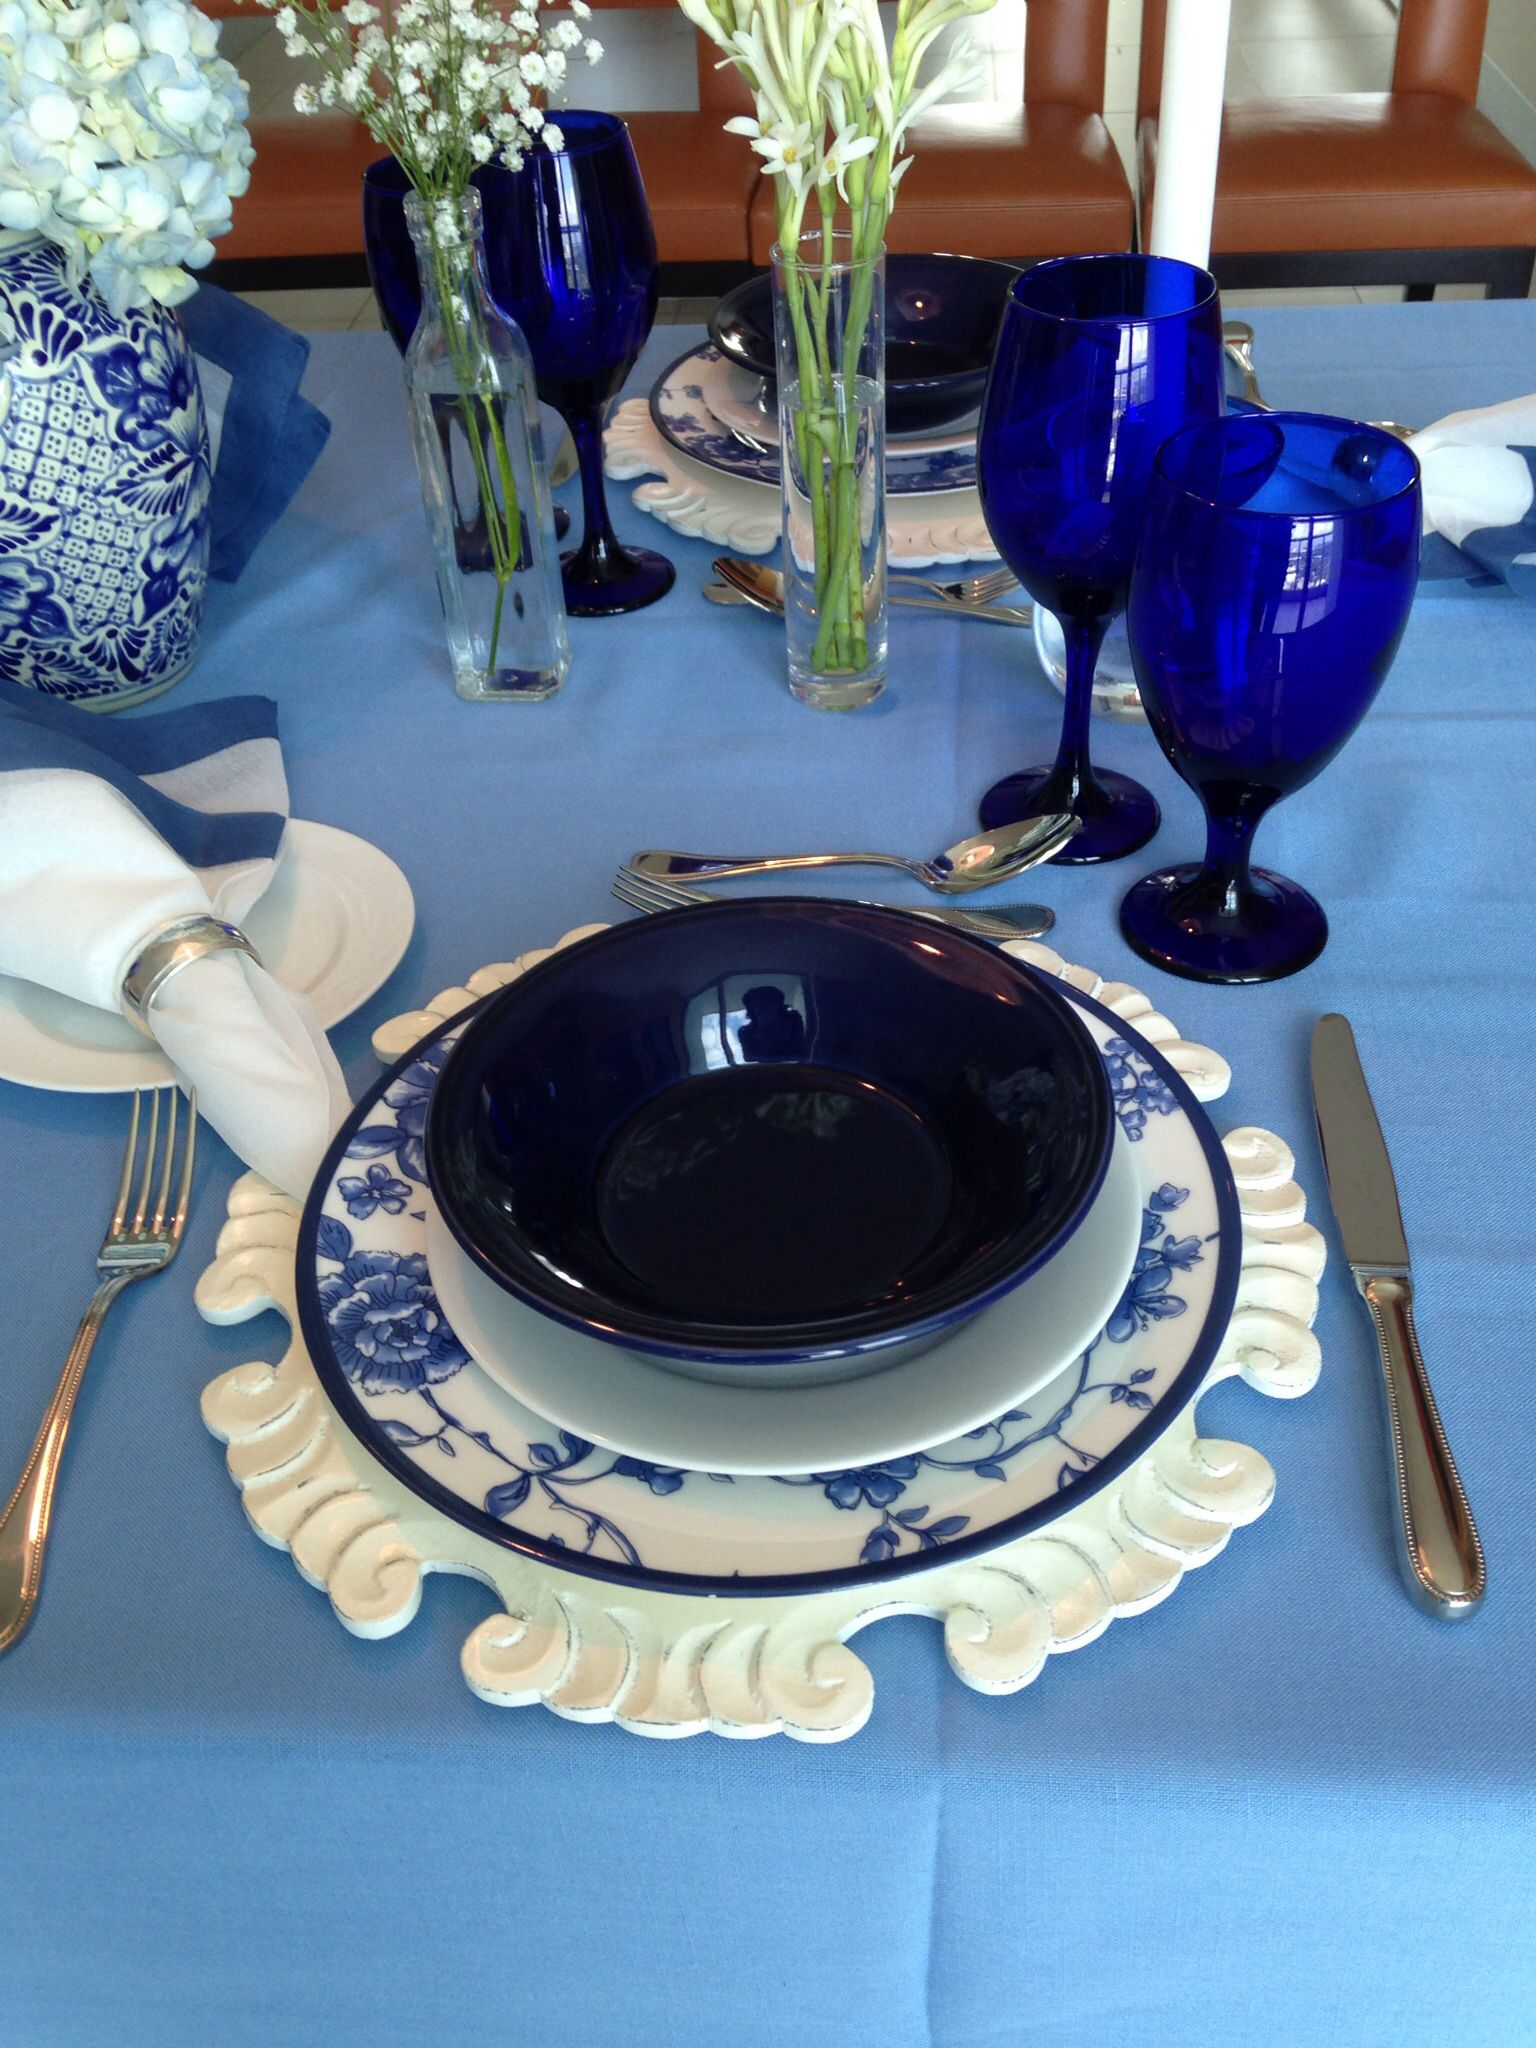 Greek table settings & Greek table settings | Hehehe | Pinterest | Table settings and Greek